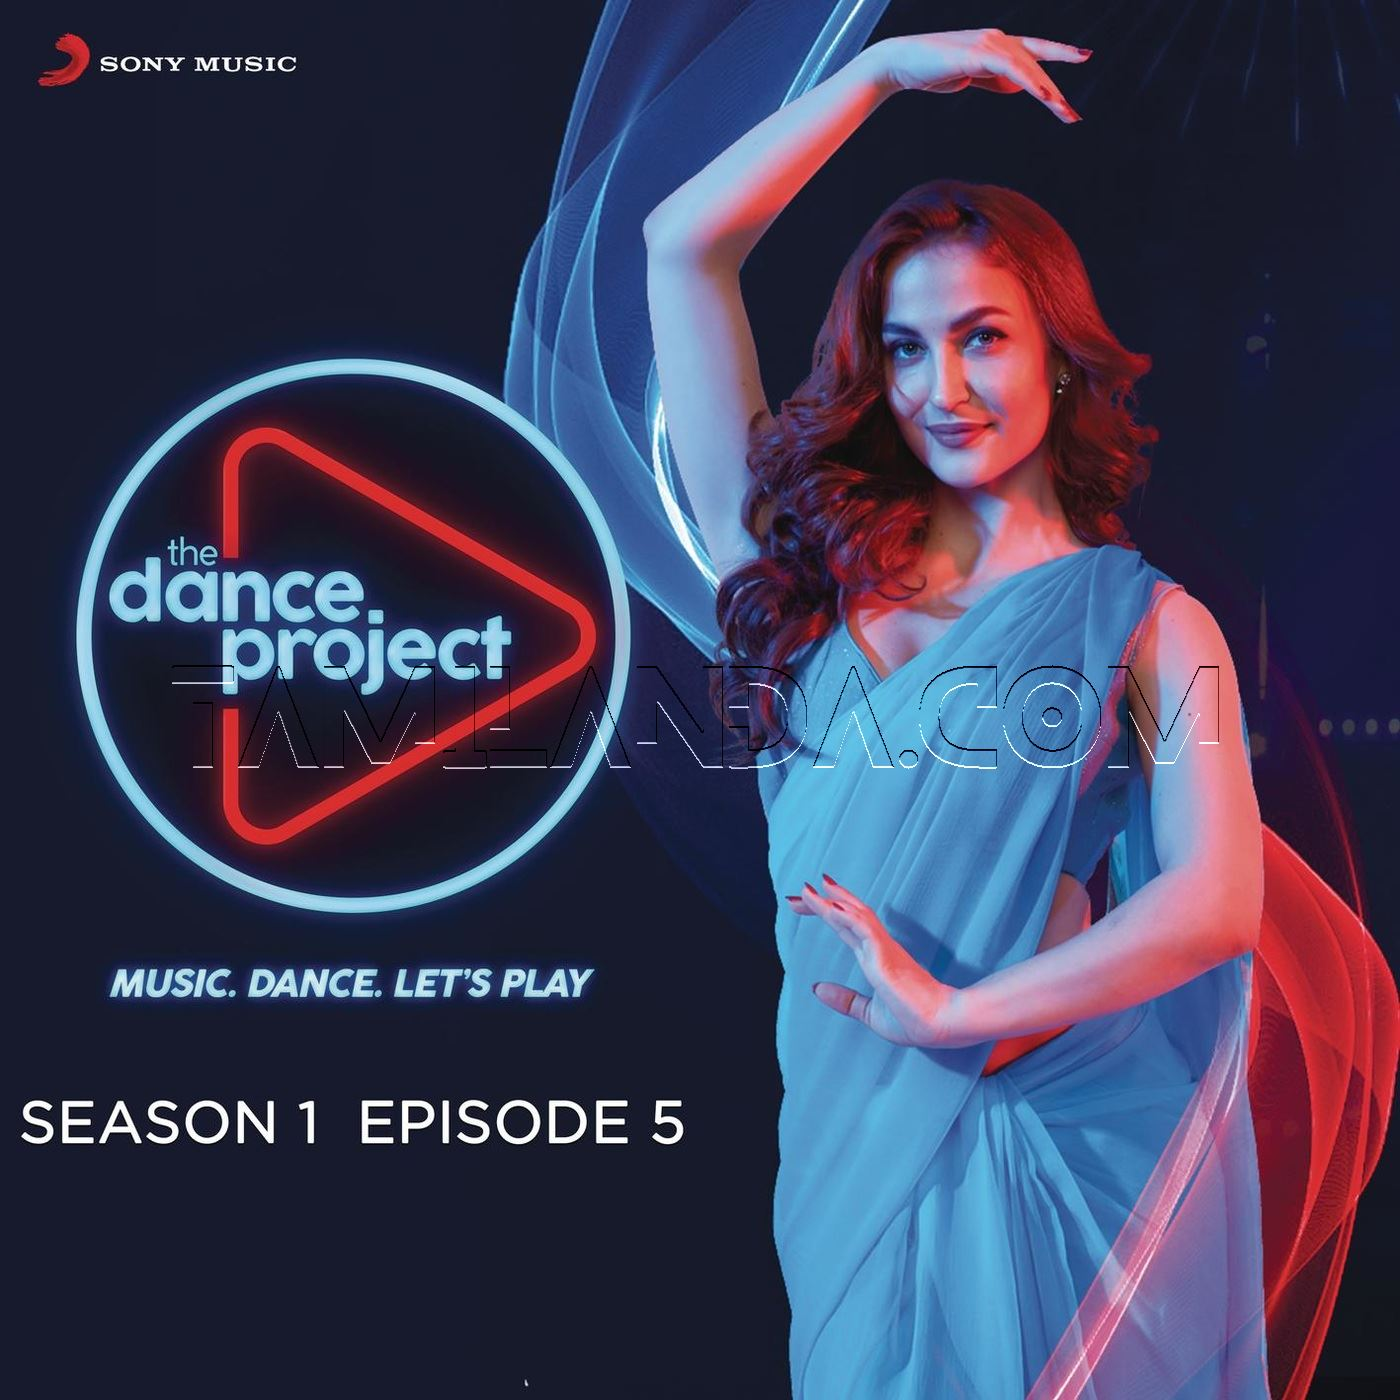 The Dance Project (Season 1: Episode 5) FLAC Songs